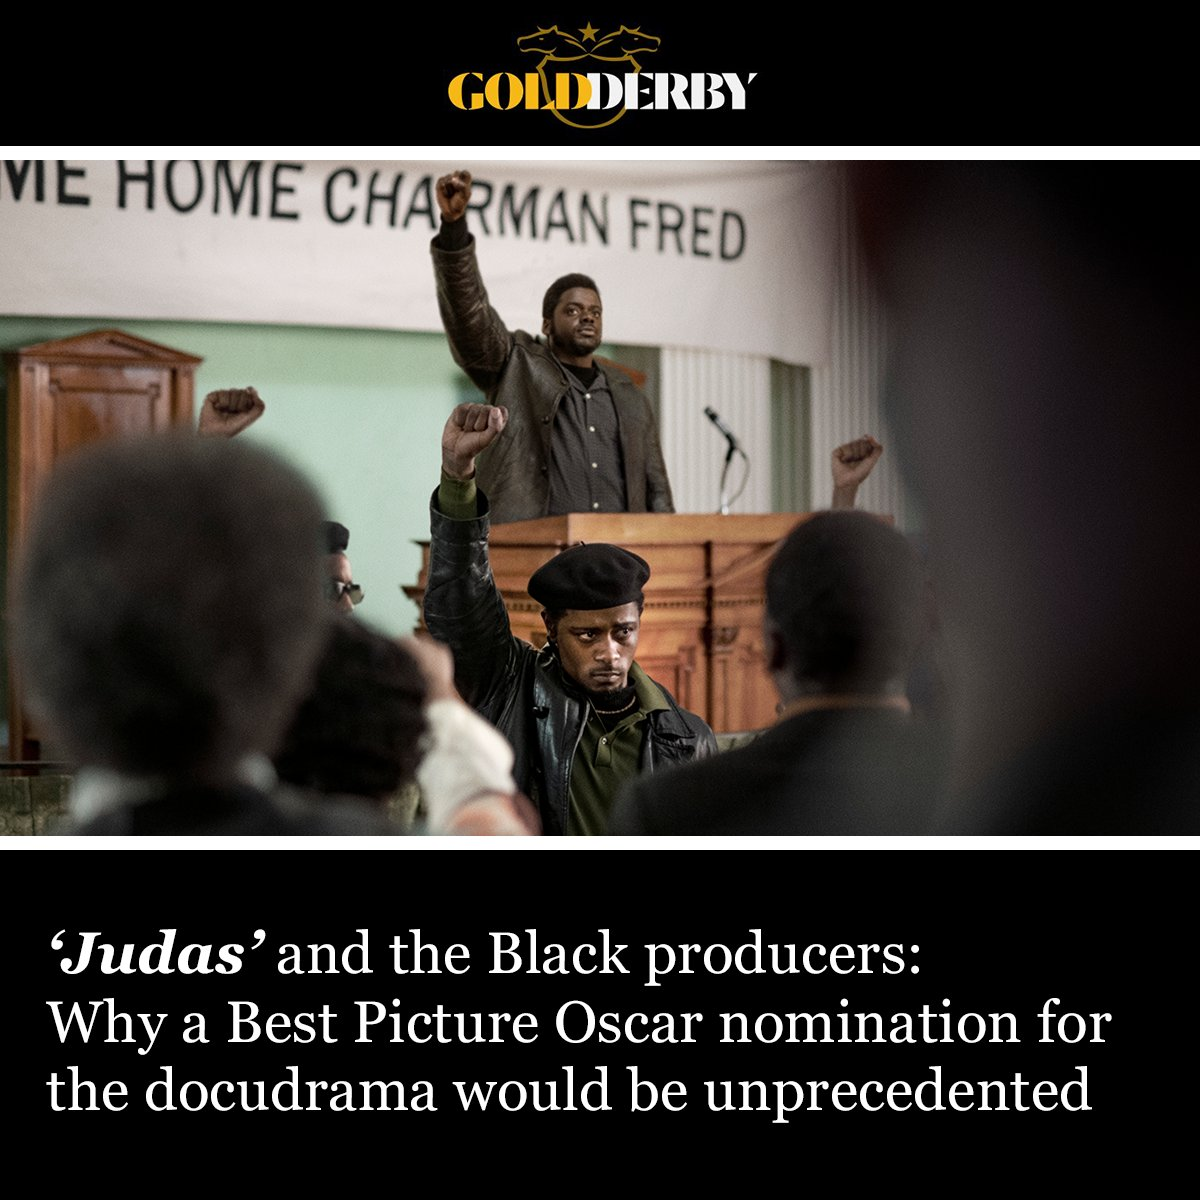 """""""If #JudasAndTheBlackMessiah is nominated for Best Picture, it would be the first film ever nominated with exclusively Black producers."""" Read more at @GoldDerby, and see this powerful film, now playing in theaters and streaming exclusively on @HBOMax: judasandtheblackmessiah.com"""